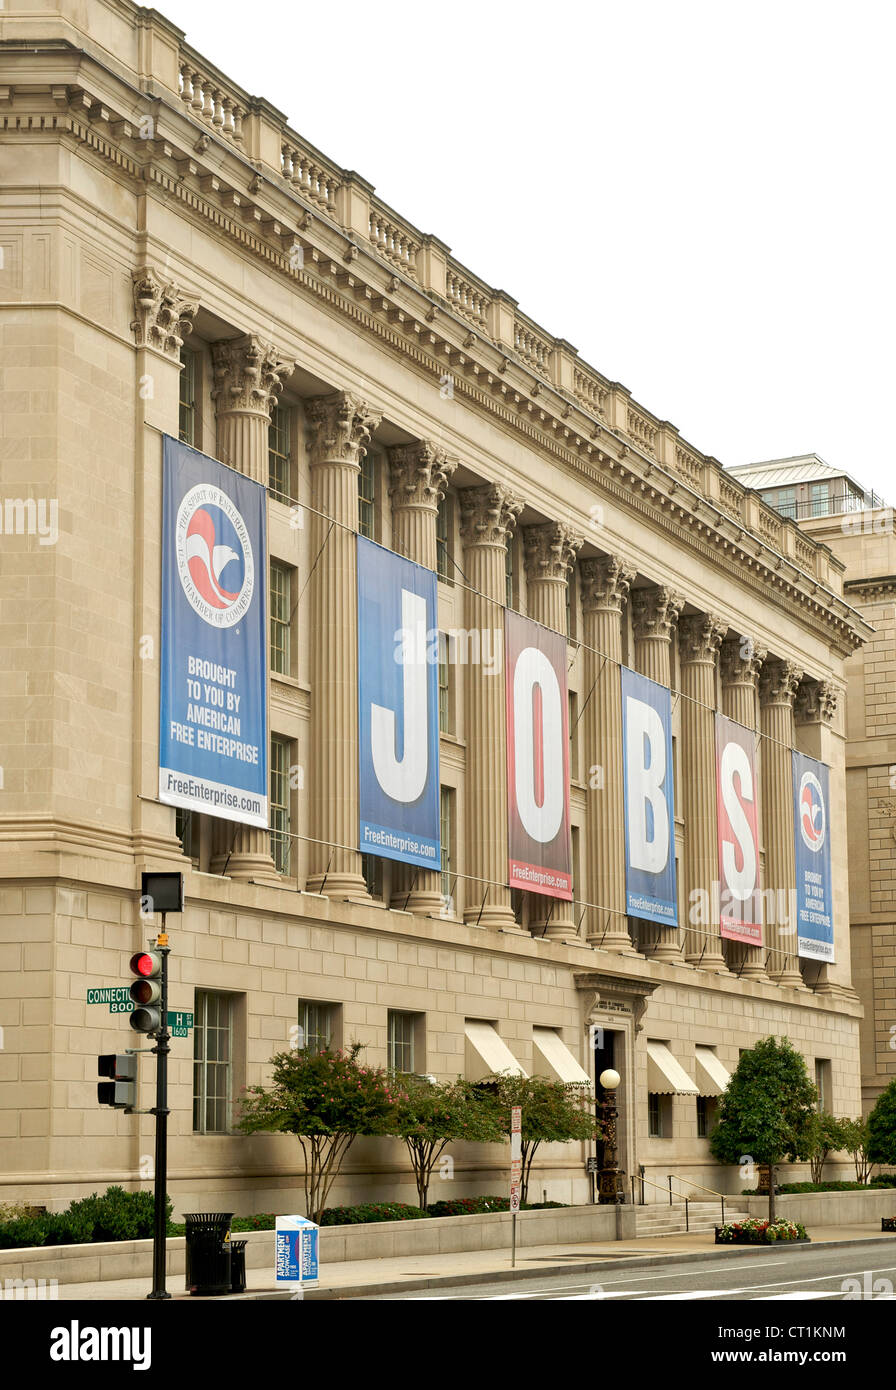 Chamber of Commerce Building in Washington DC, USA. - Stock Image